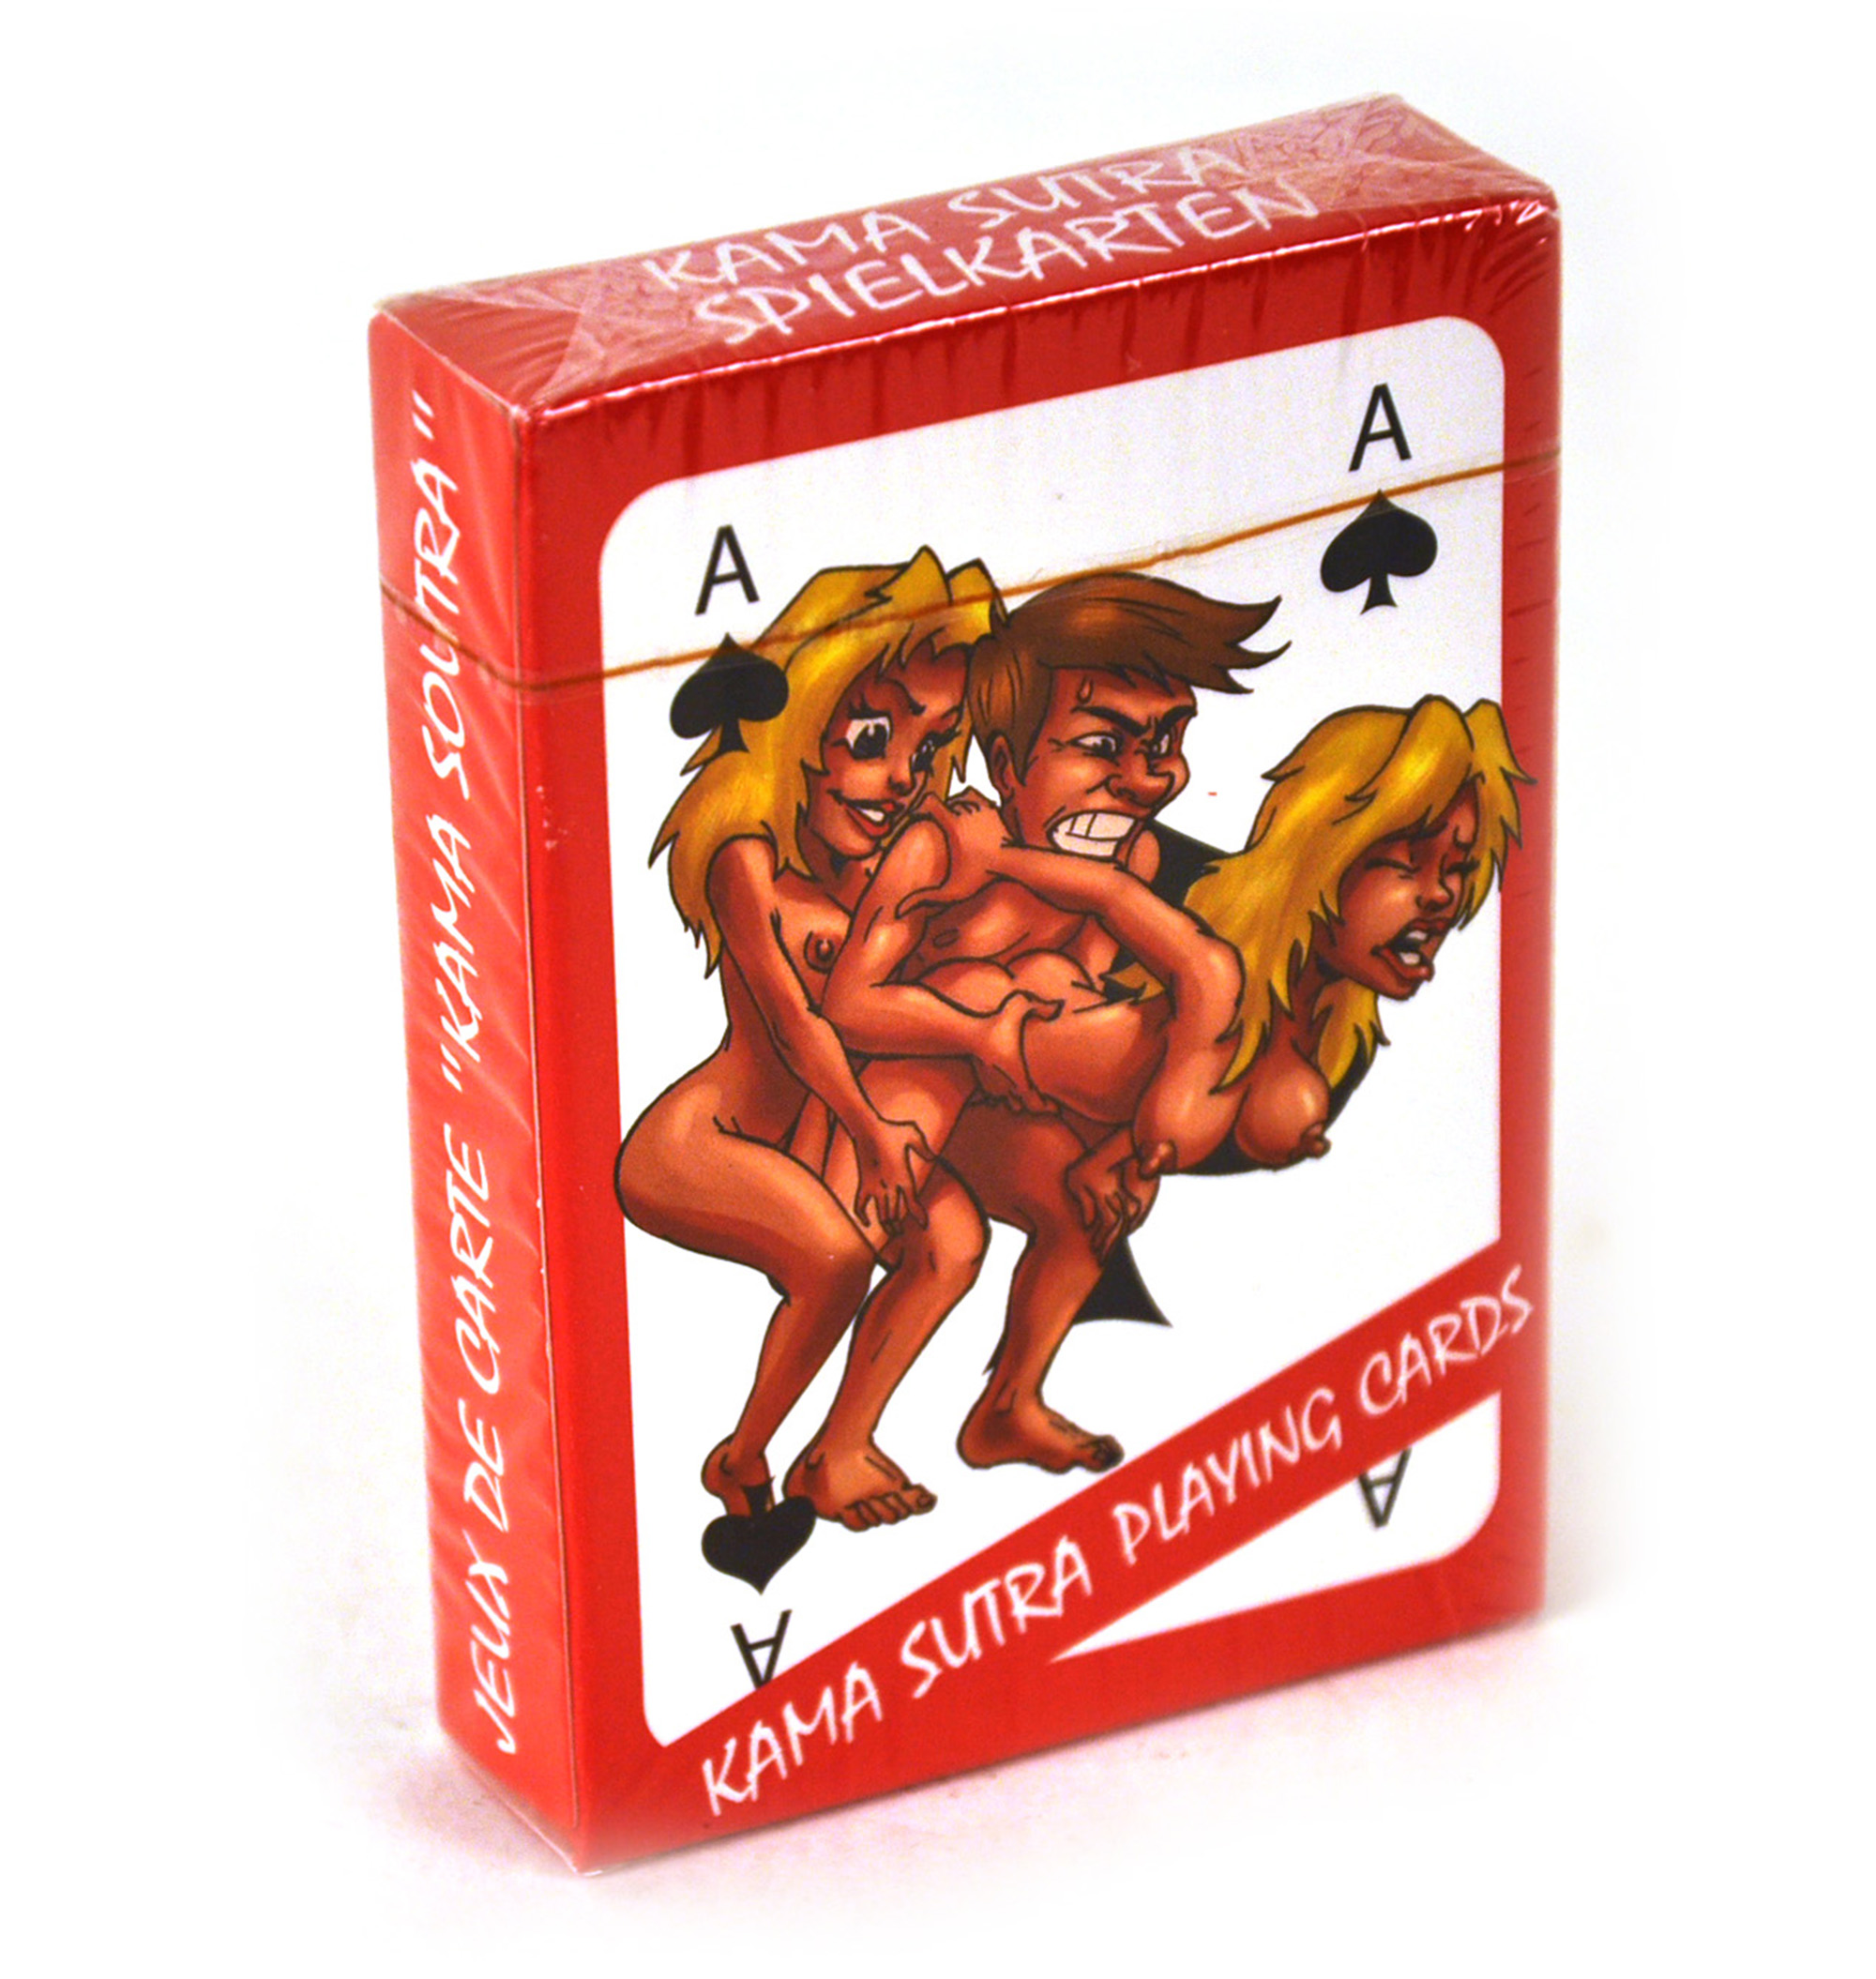 Have sex position playing card deck